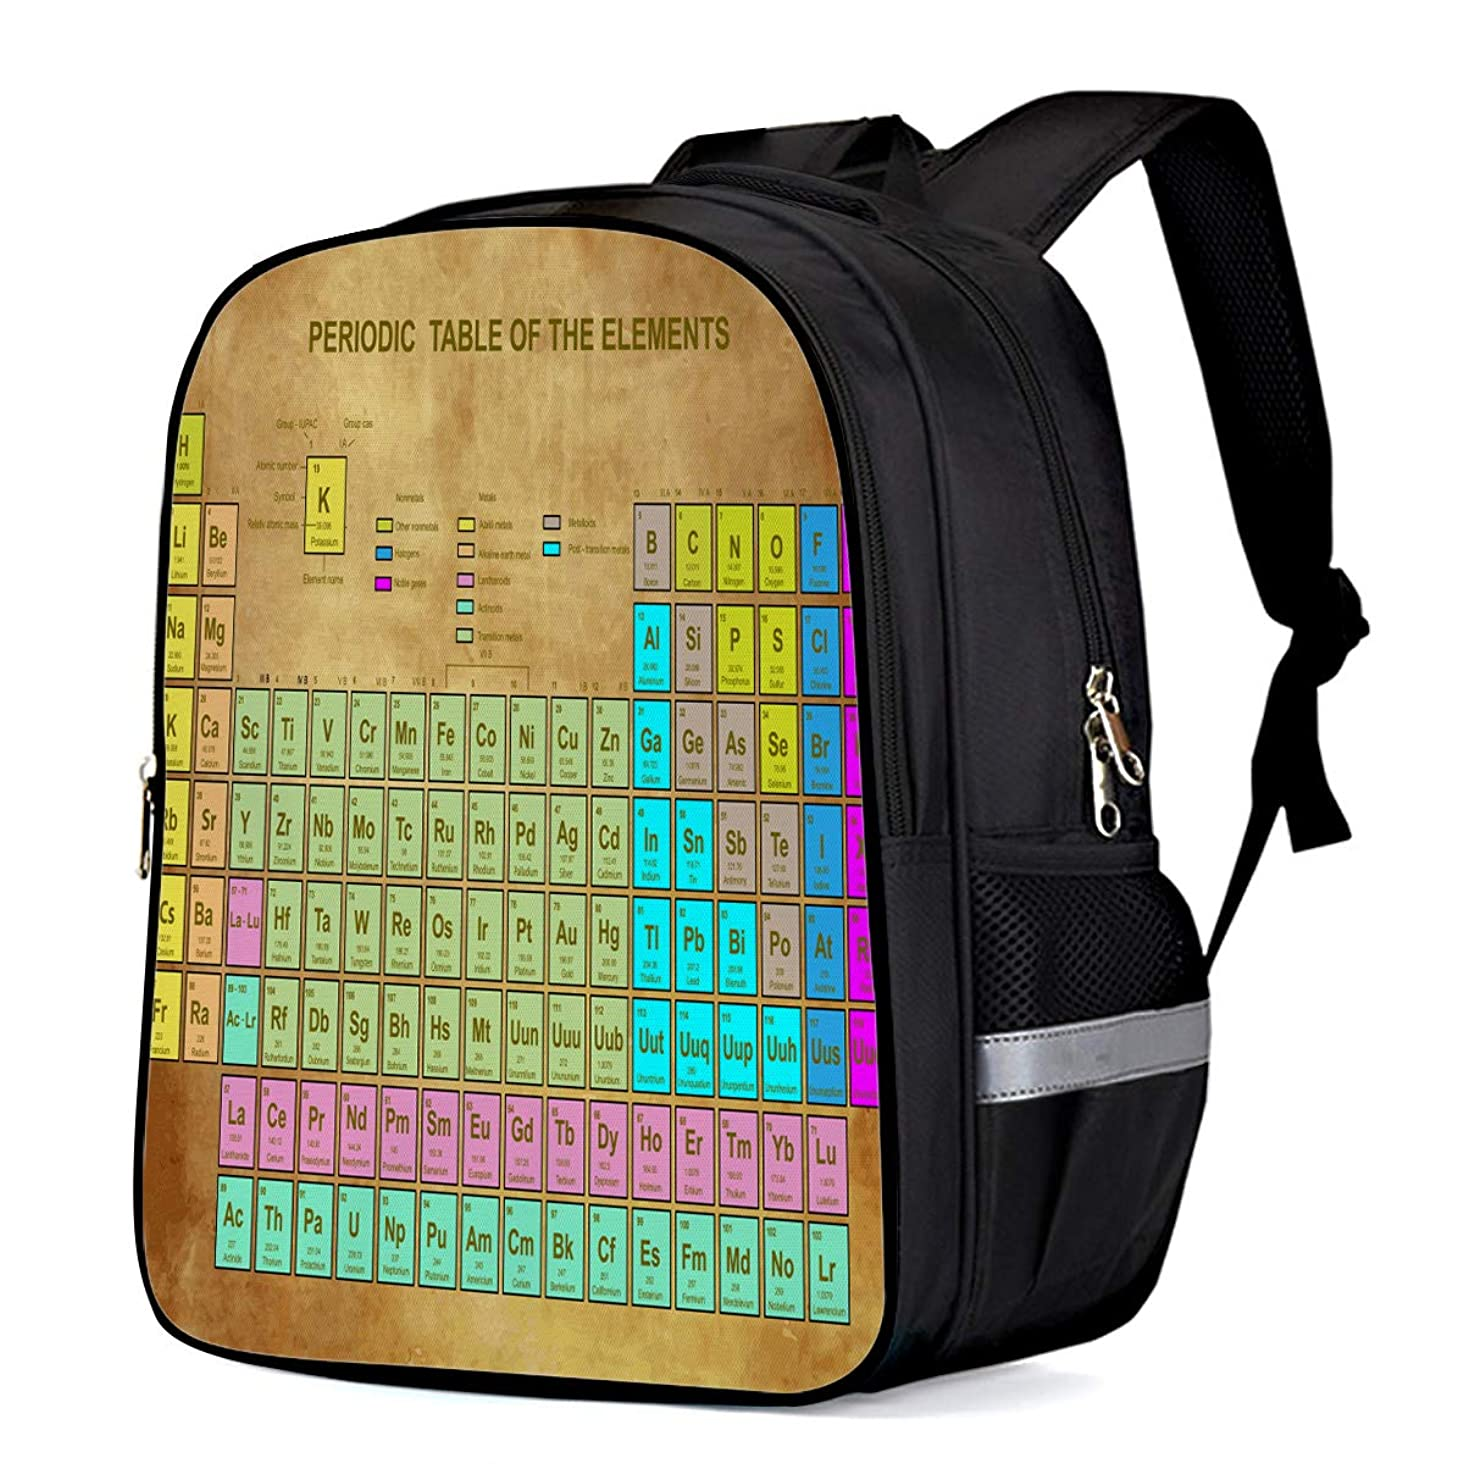 Backpack for Children/Boys/Girls Vintage Brown Paper Periodic Table of the Elements 3D Printing Shool Book Bag Daypacks Satchel Rucksack Hiking Travel Shoulders Bag Fits Laptop- Small